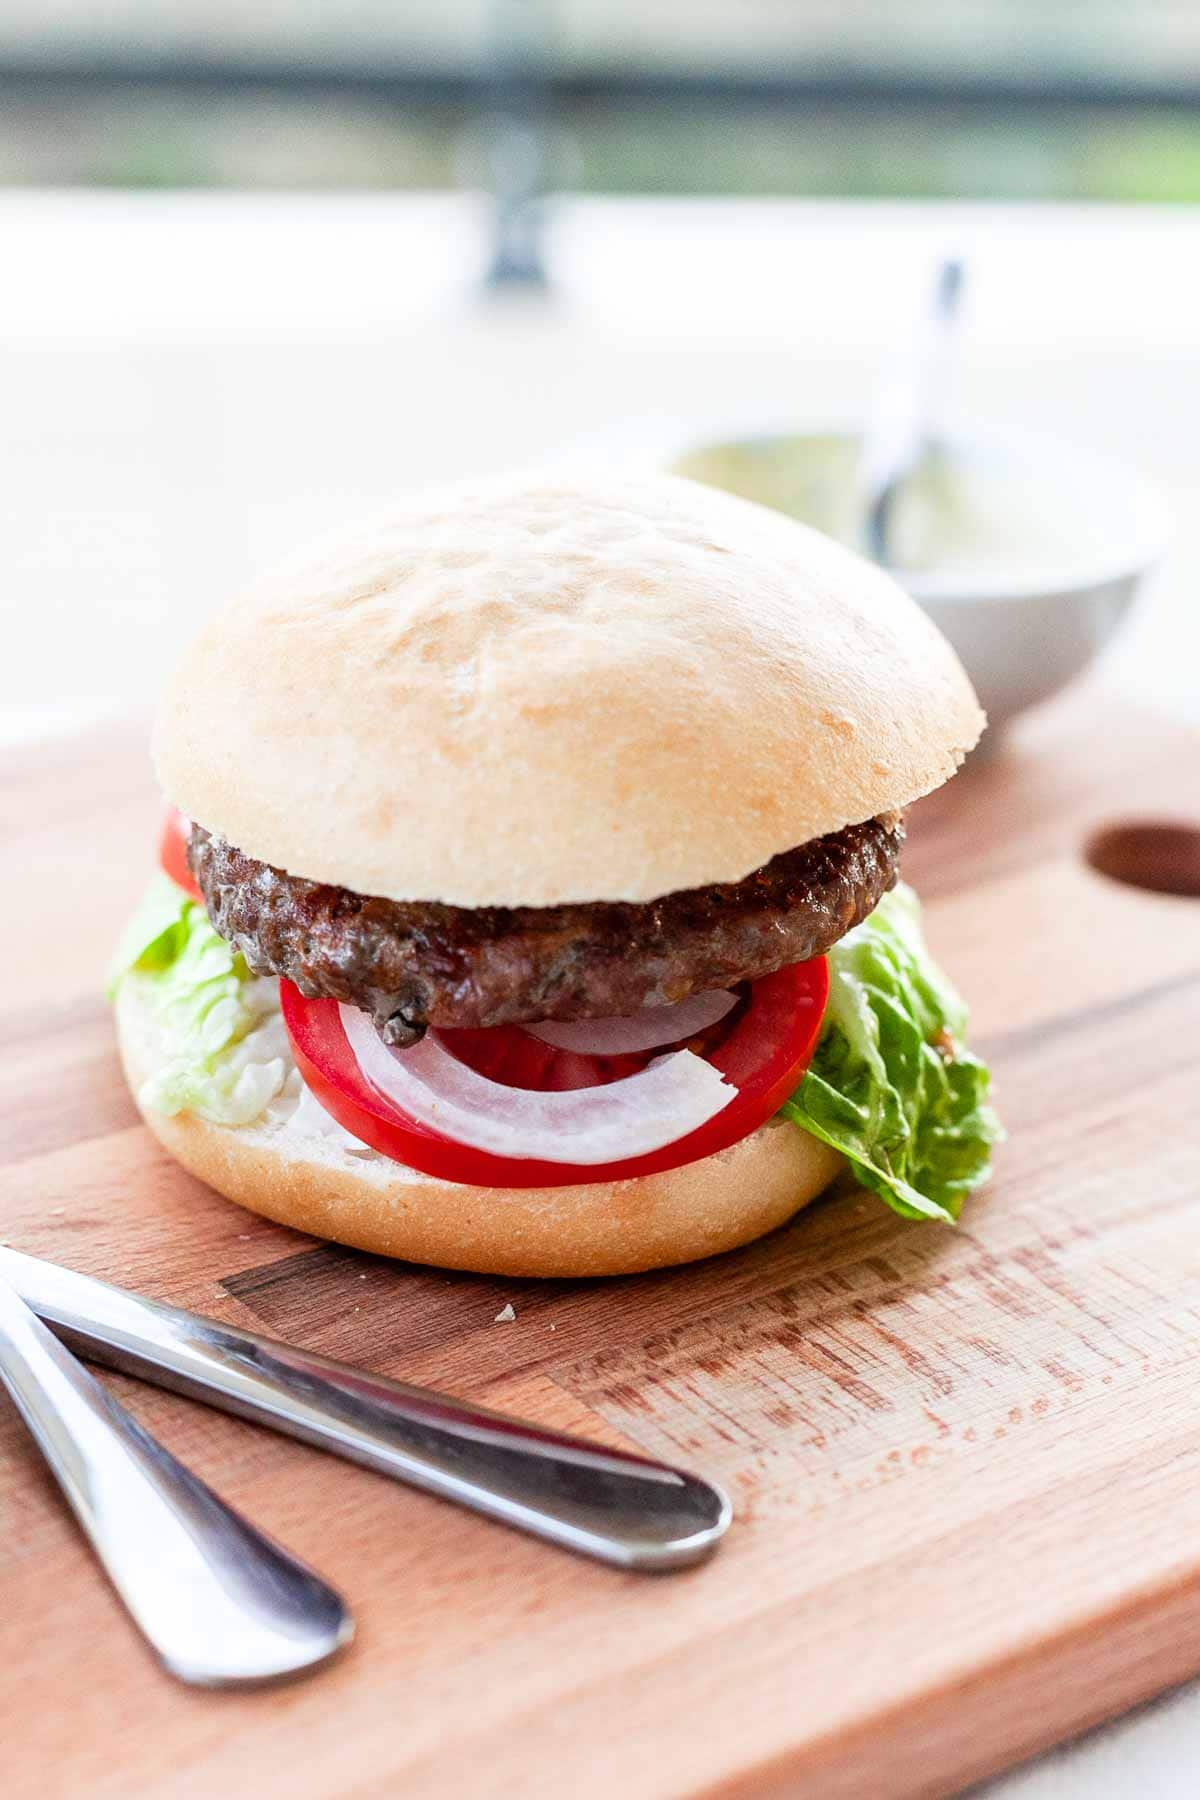 A classic grilled hamburger is tasty and ultimate fast food. A limited number of ingredients. The BBQ adds all the flavor. Visit fastfoodbistro.com for the fulle recipe #fastfoodbistro #grilledhamburger #grilledburger #hamburgerrecipe #fastfood #dinner